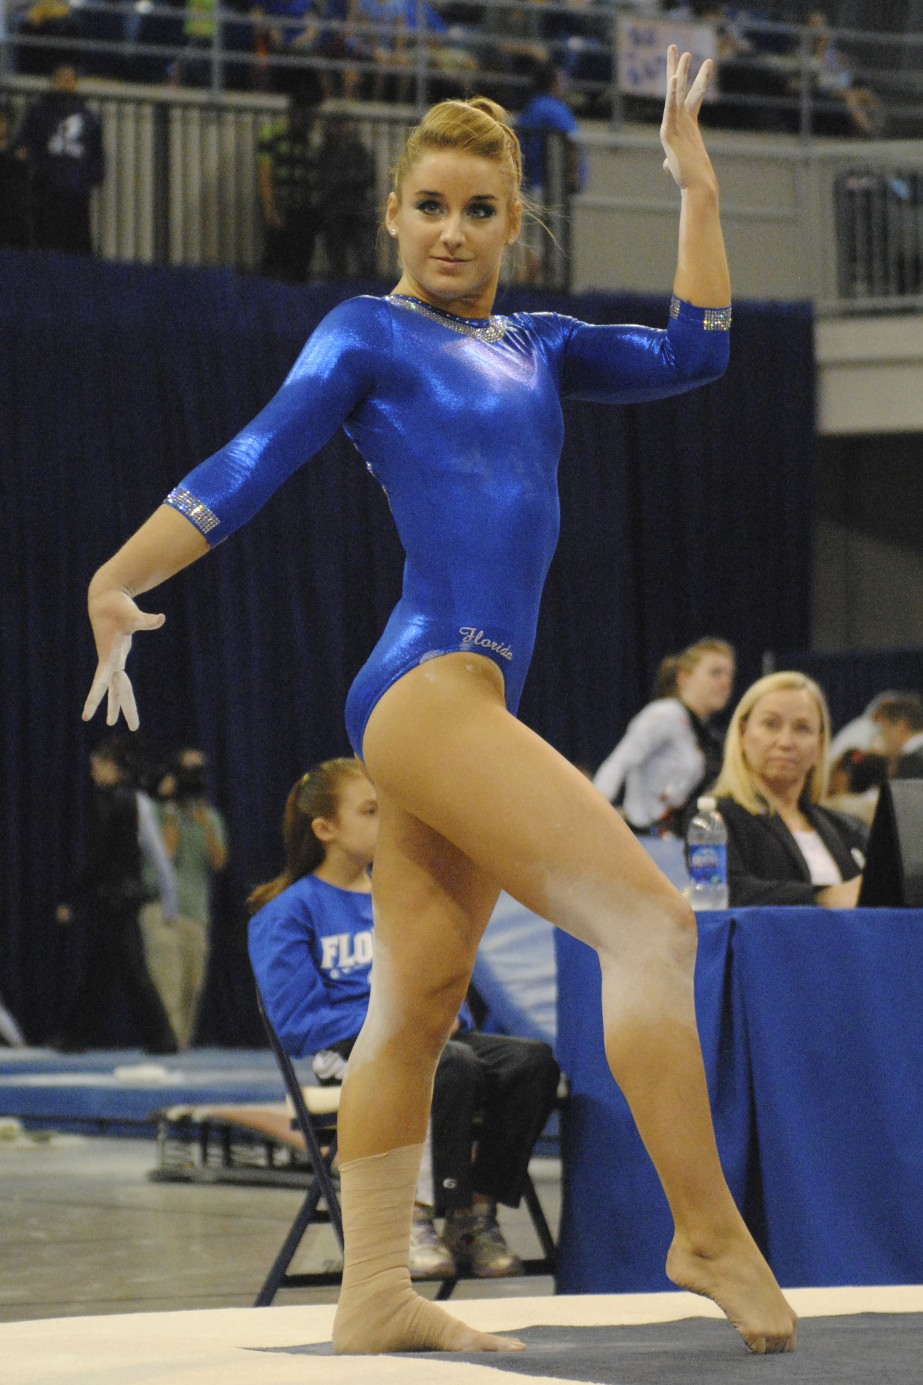 Senior Amy Ferguson earned a 9.85 for her floor routine.